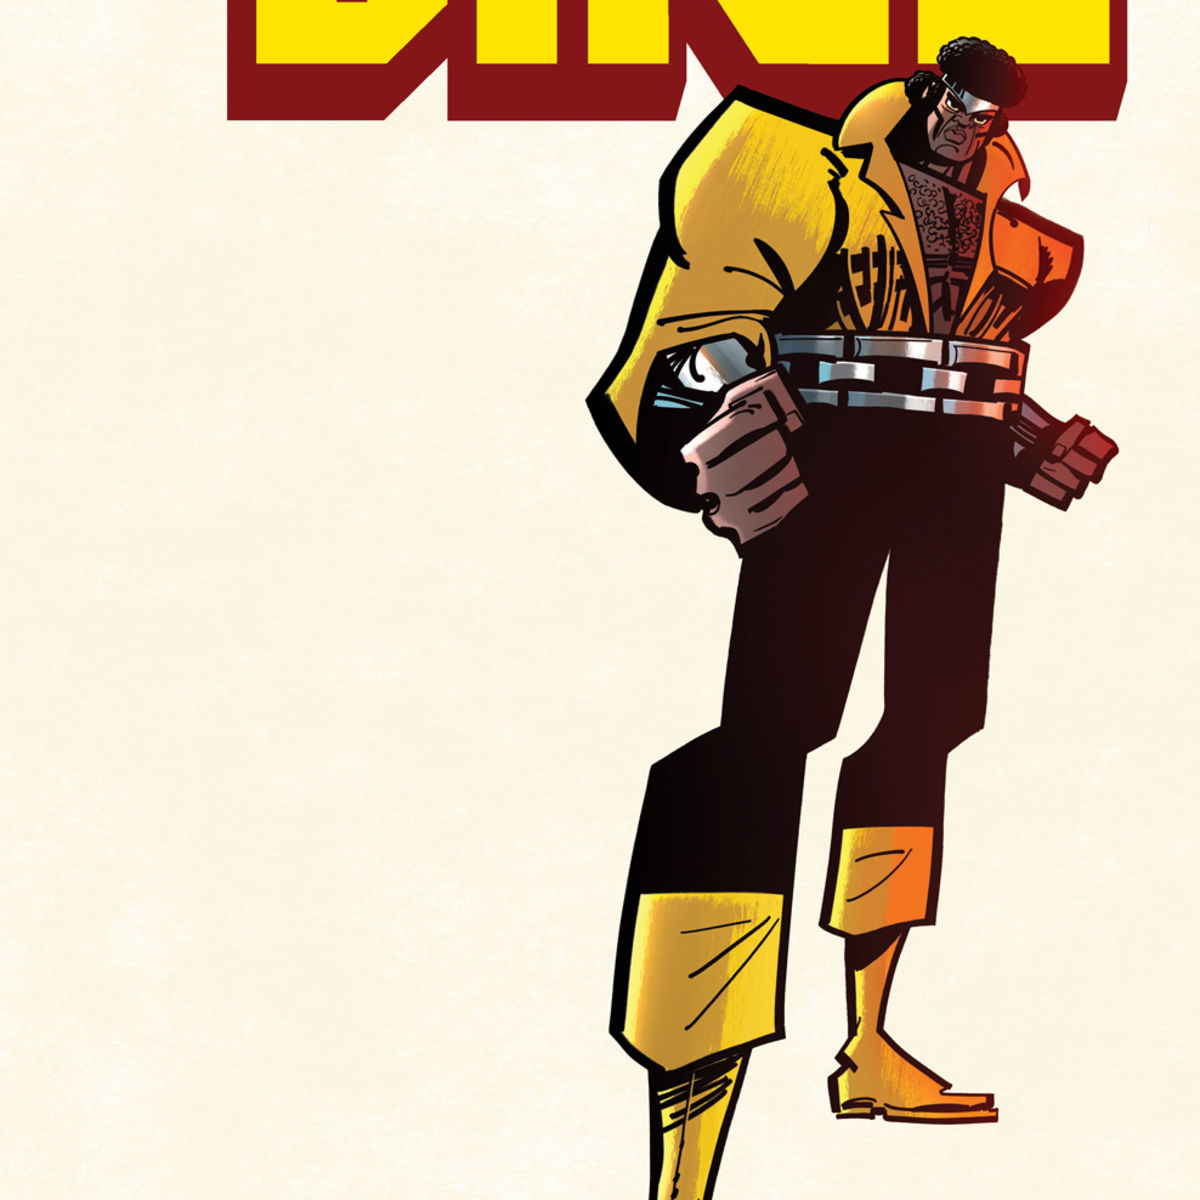 sweet christmas luke cage gets his own solo comic just in time for the netflix series